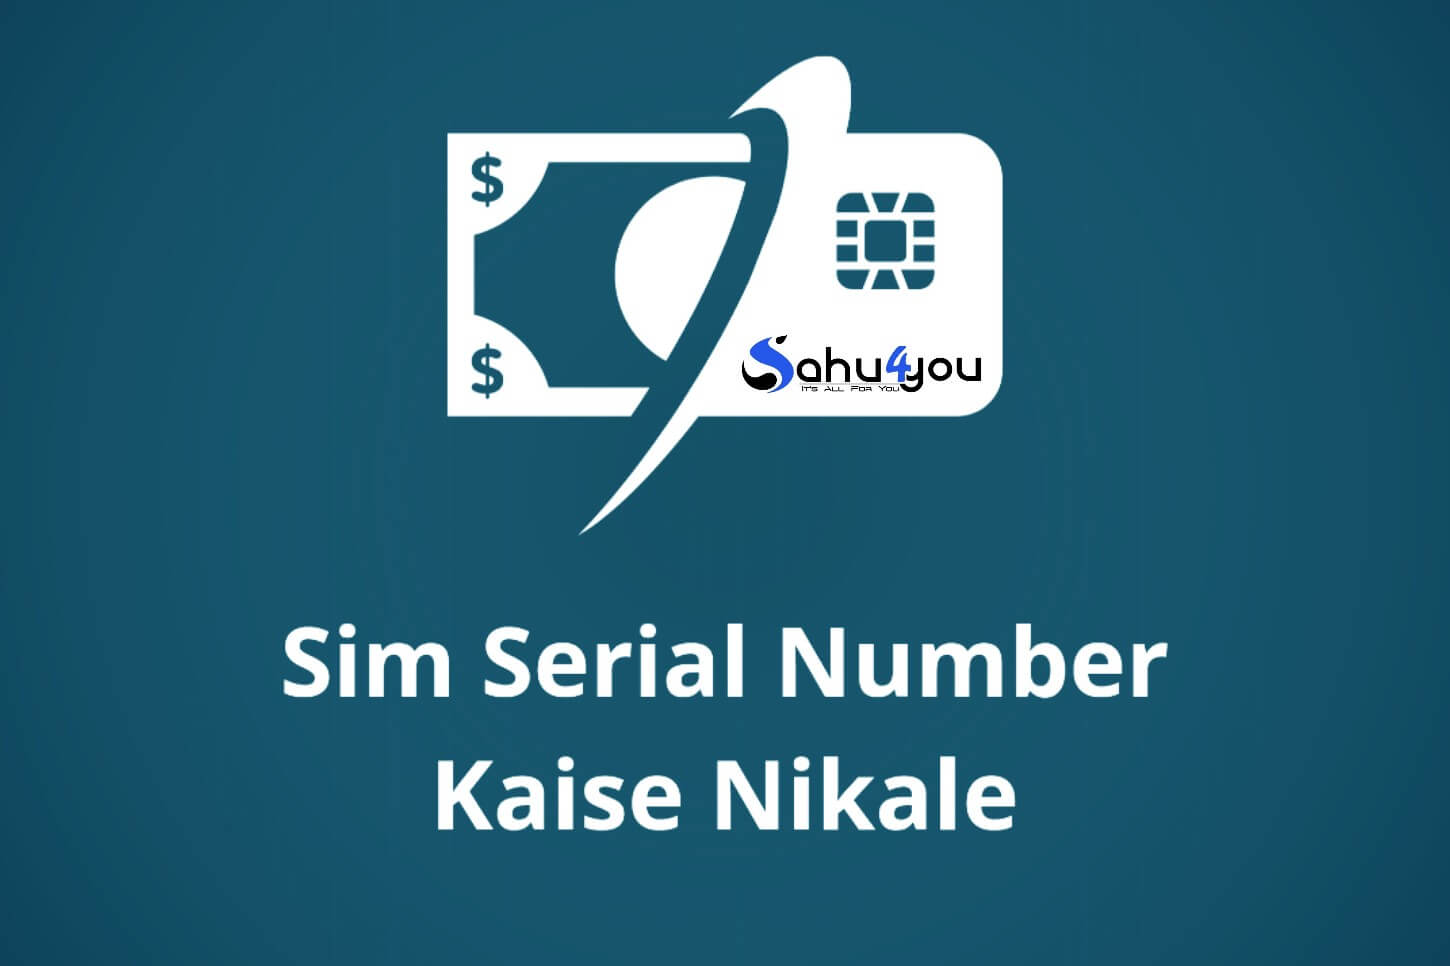 ICCID SIM Serial Number Check